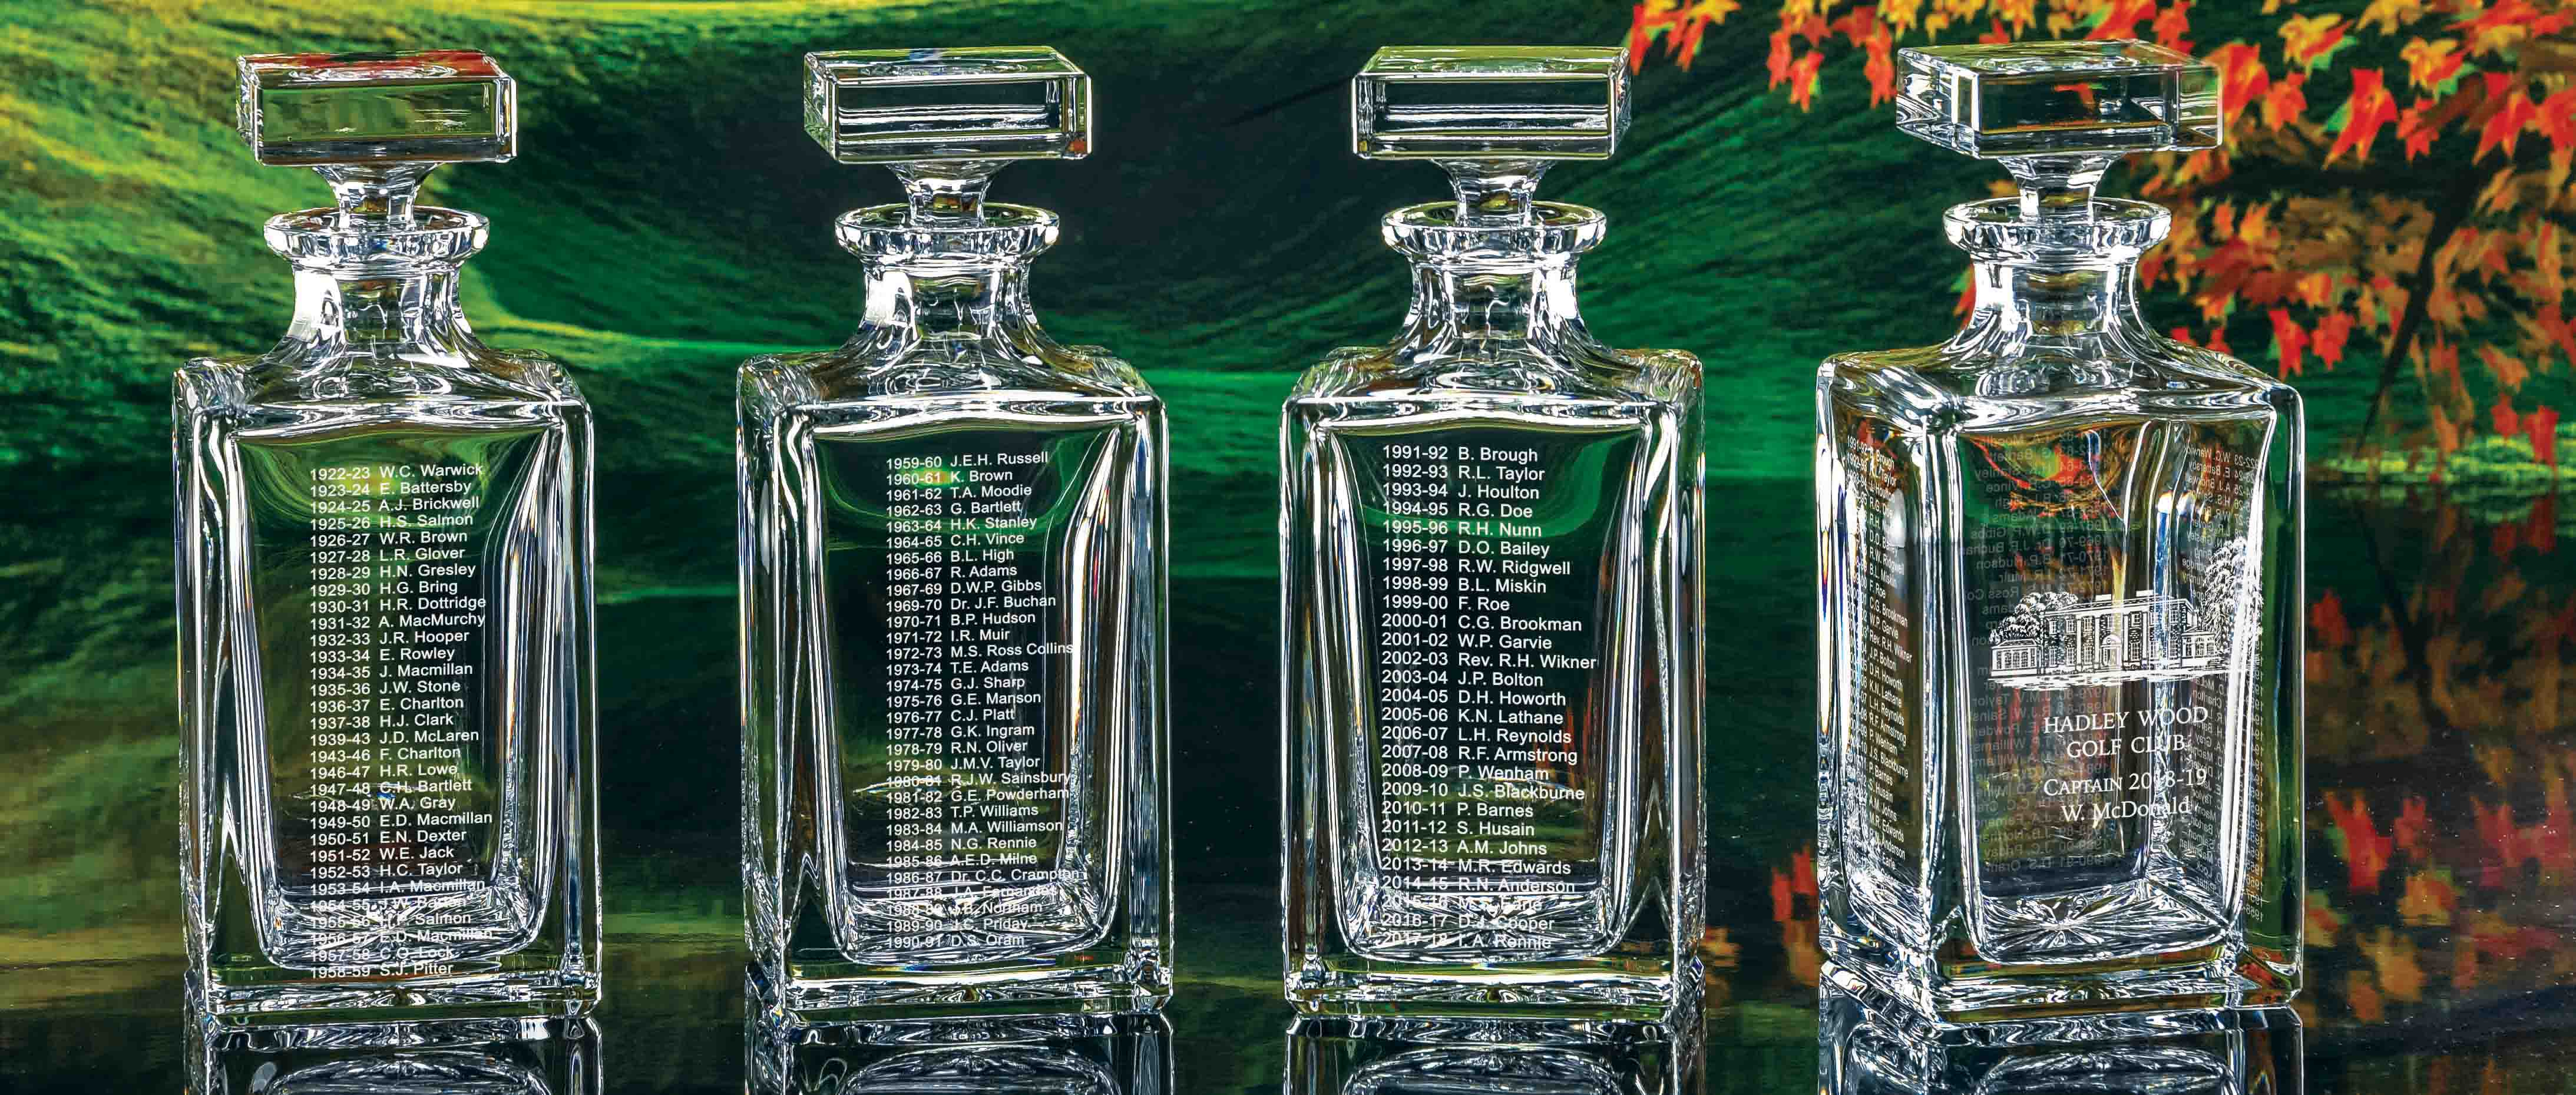 Click here to view our Captain's Captains decanter!